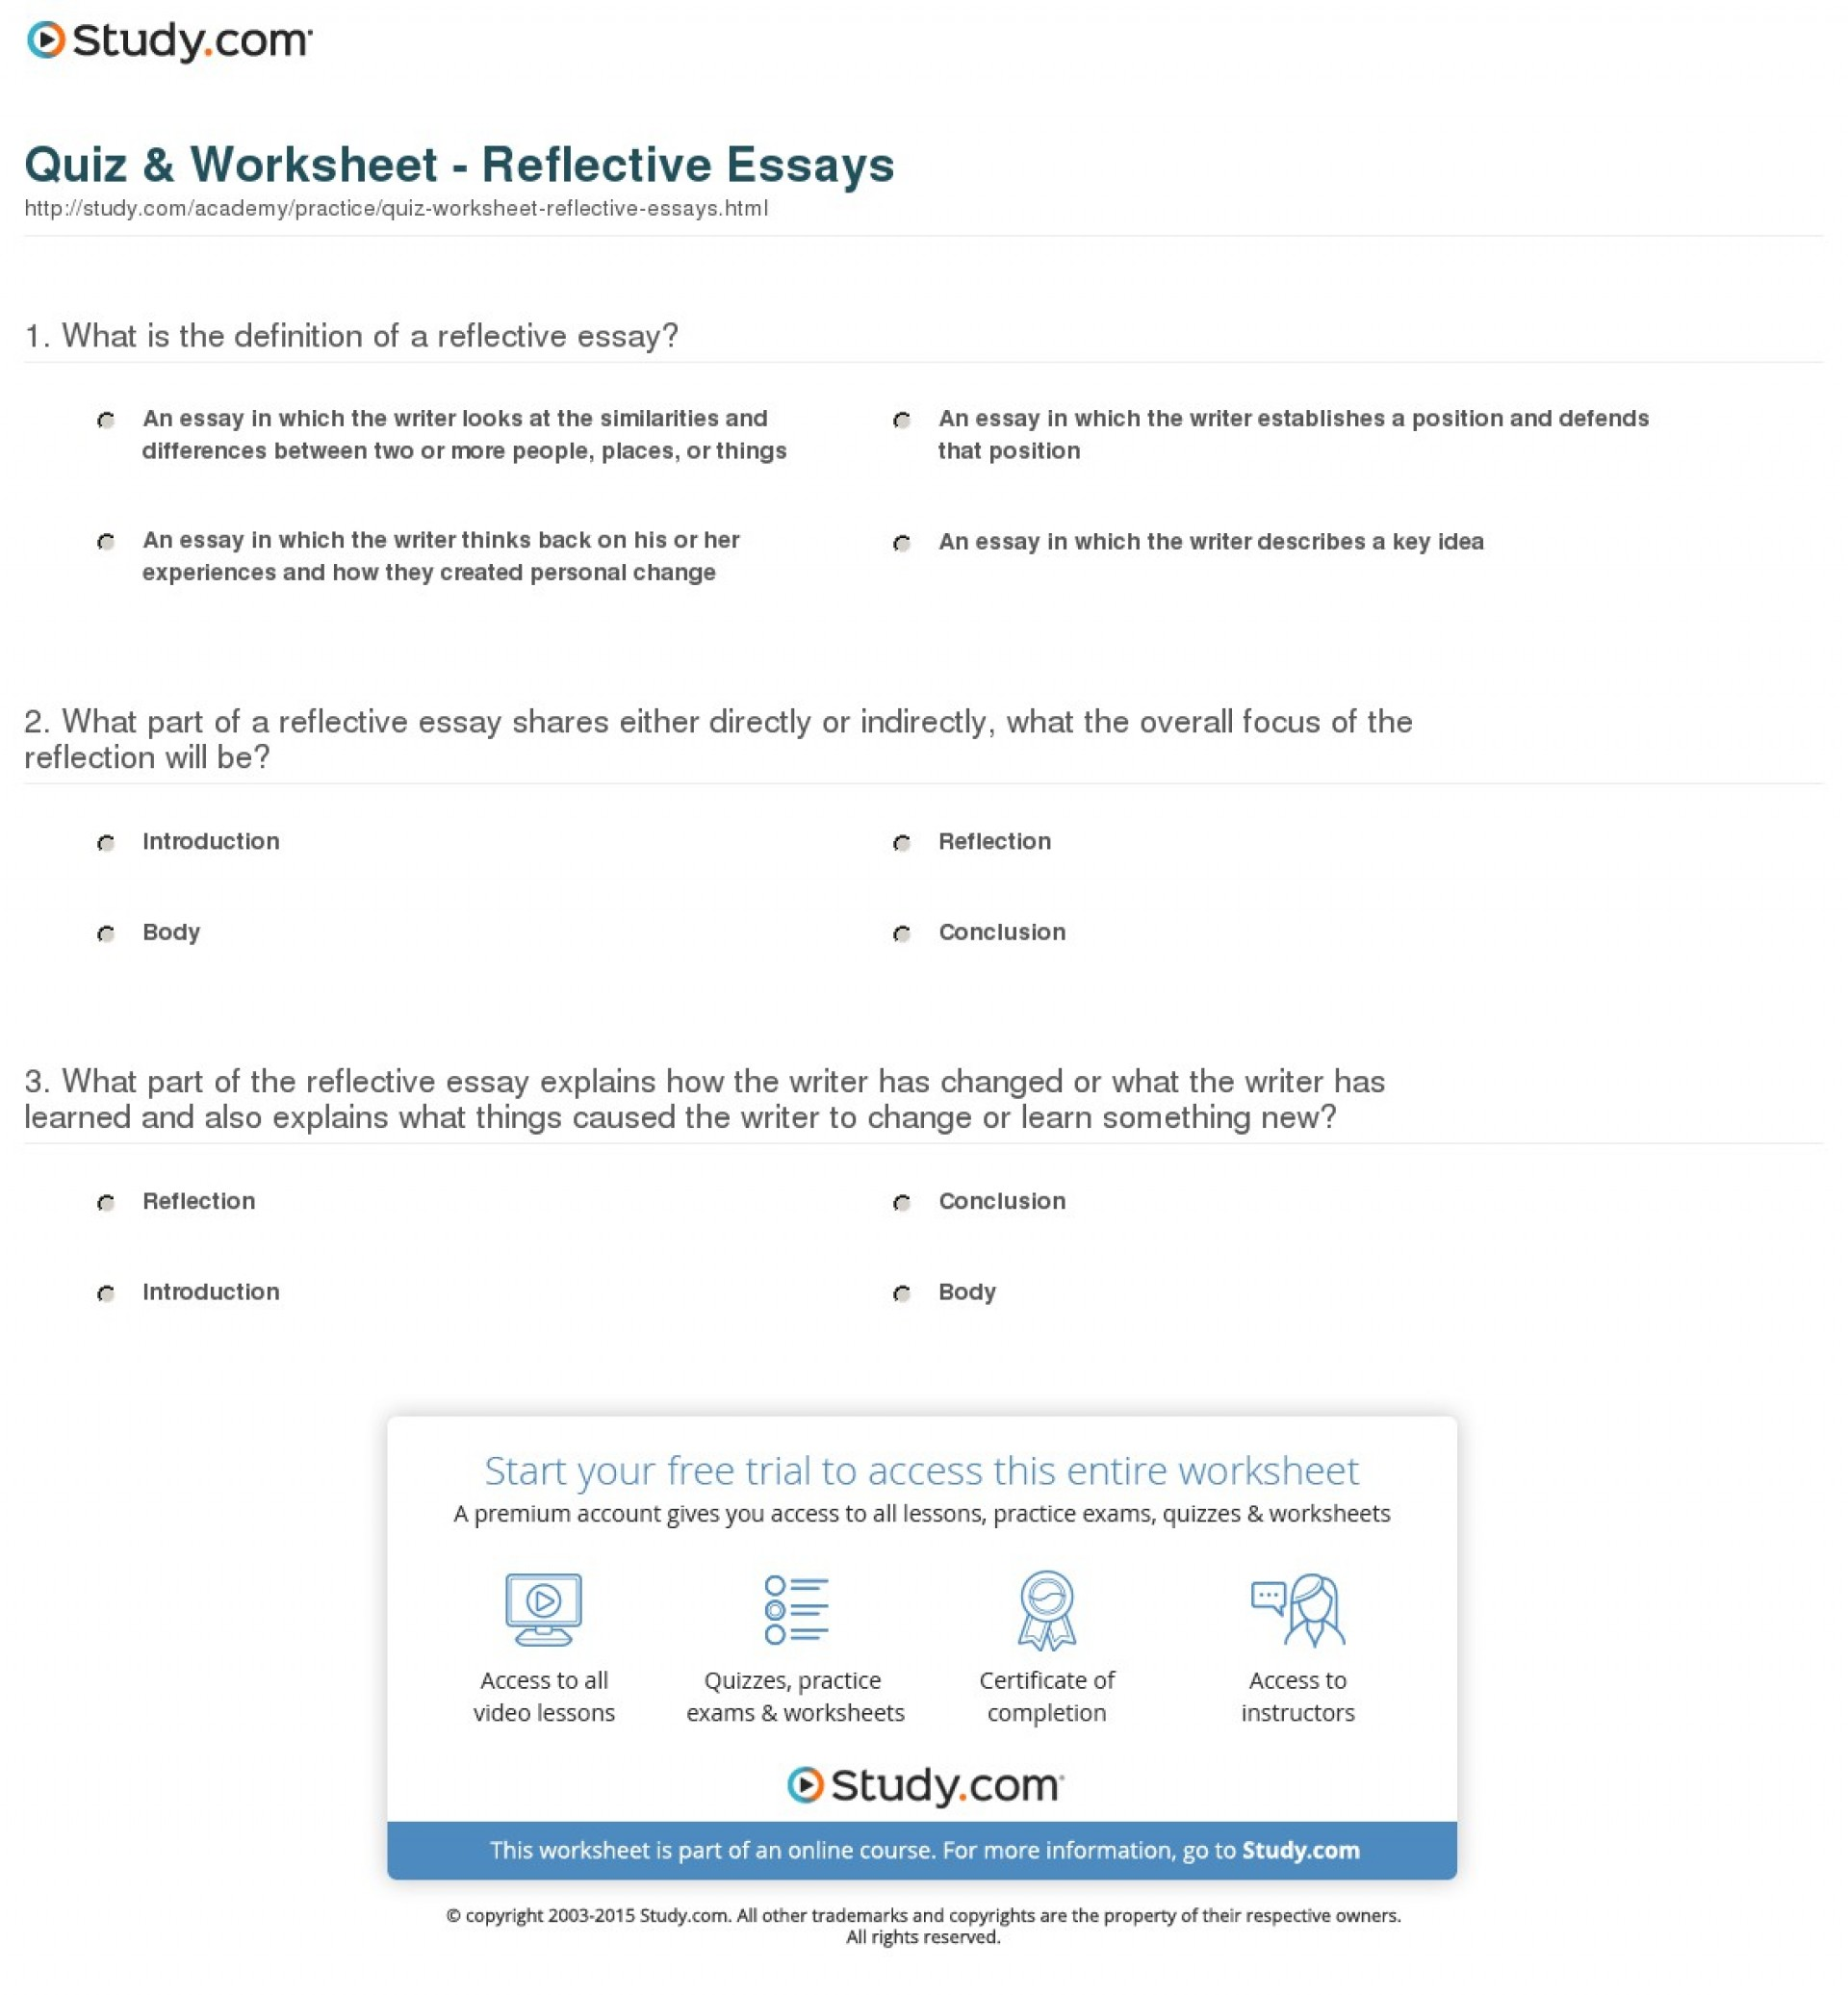 008 Essay Example Quiz Worksheet Reflective Magnificent Essays By Manzoor Mirza Pdf Analysis Definition Writing Style 1920